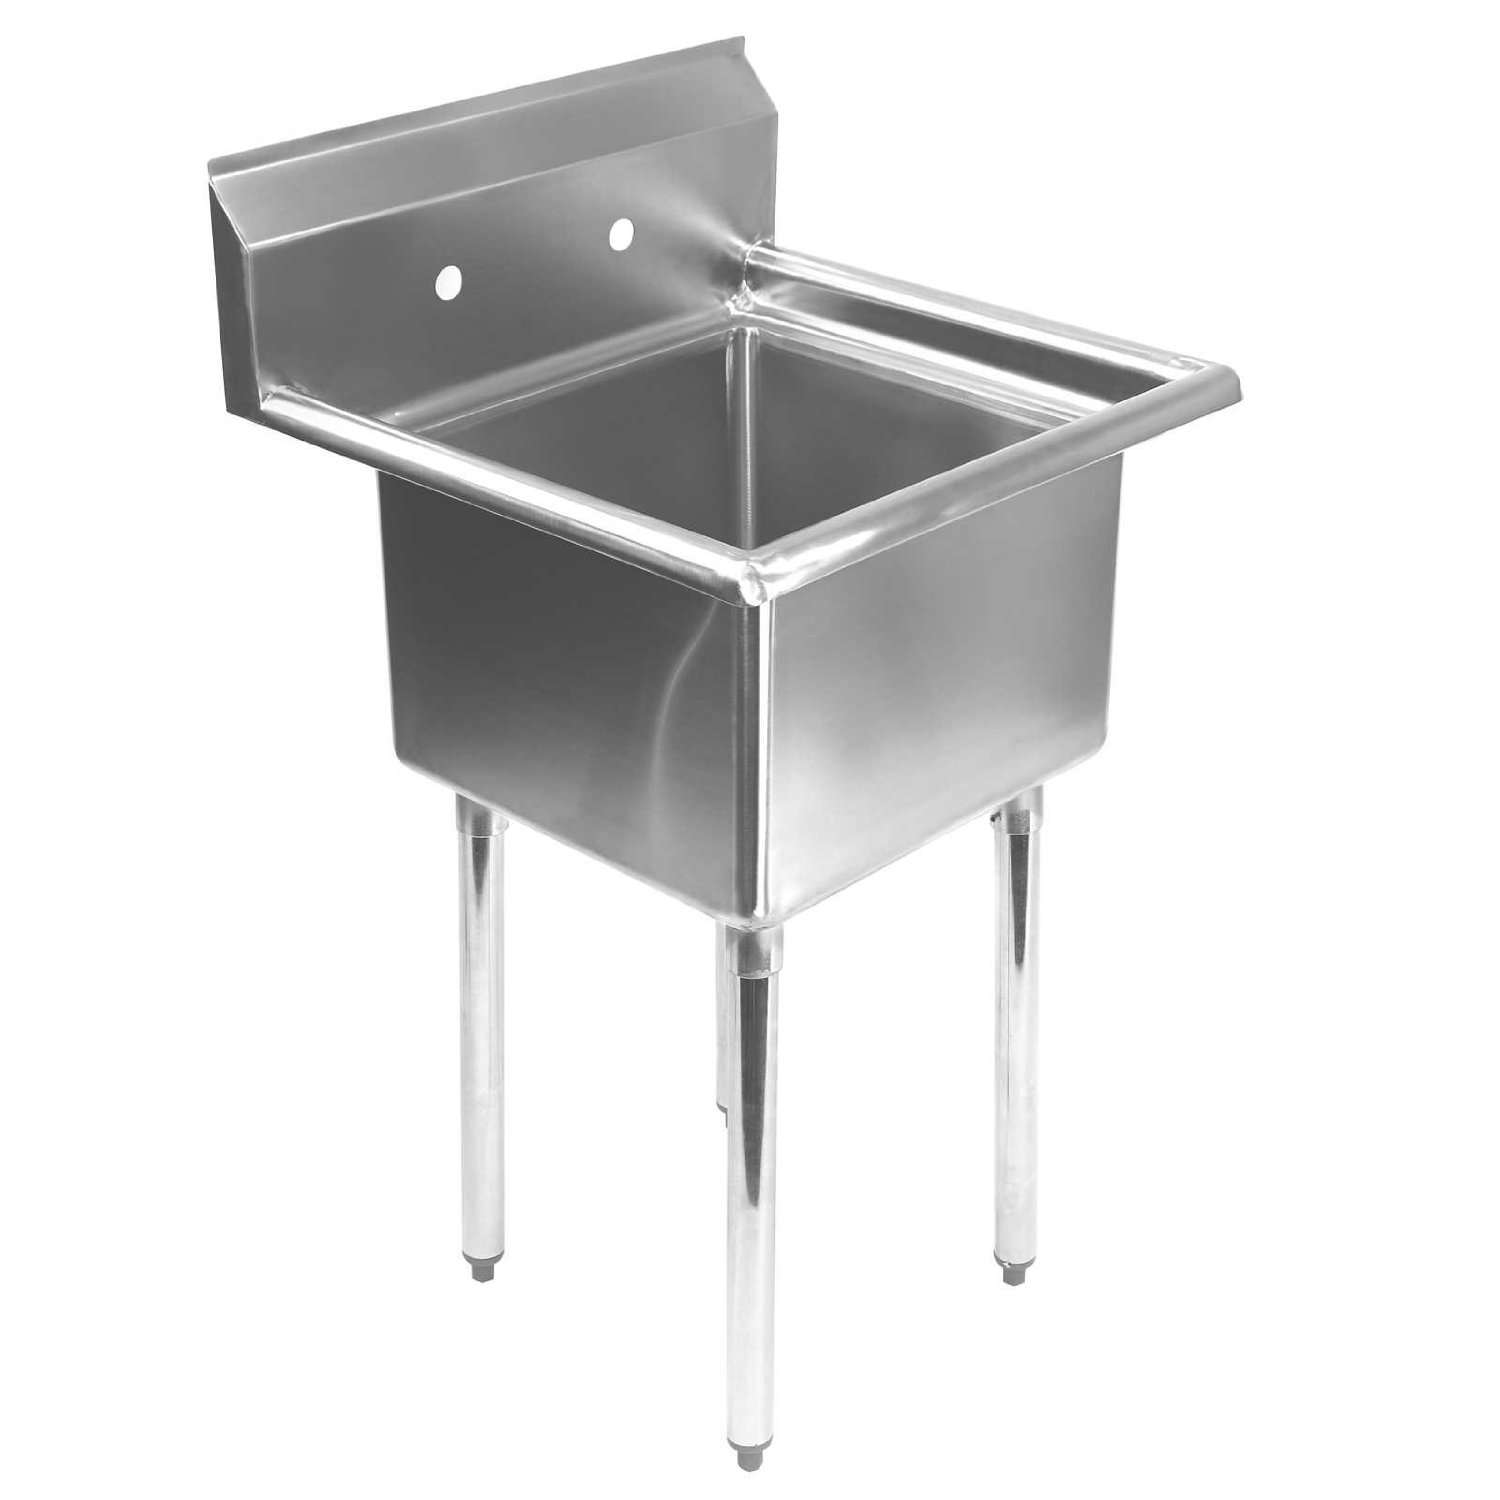 Outdoor Laundry Sink : Above: A compact Gridmann stainless steel Commercial Utility Sink is ...